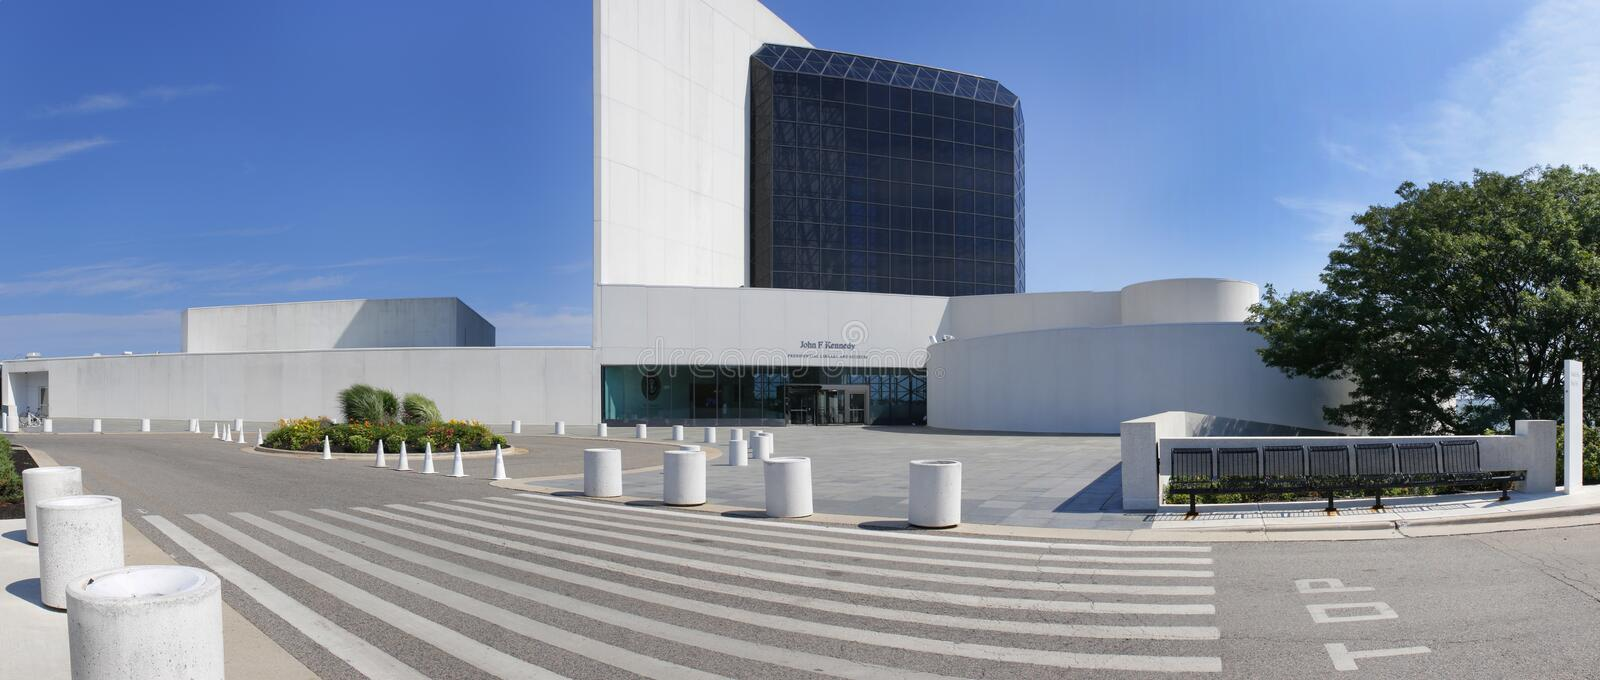 John F Kennedy Presidential Library. The John F. Kennedy Presidential Library and Museum is the presidential library and museum of John Fitzgerald Kennedy, the royalty free stock images